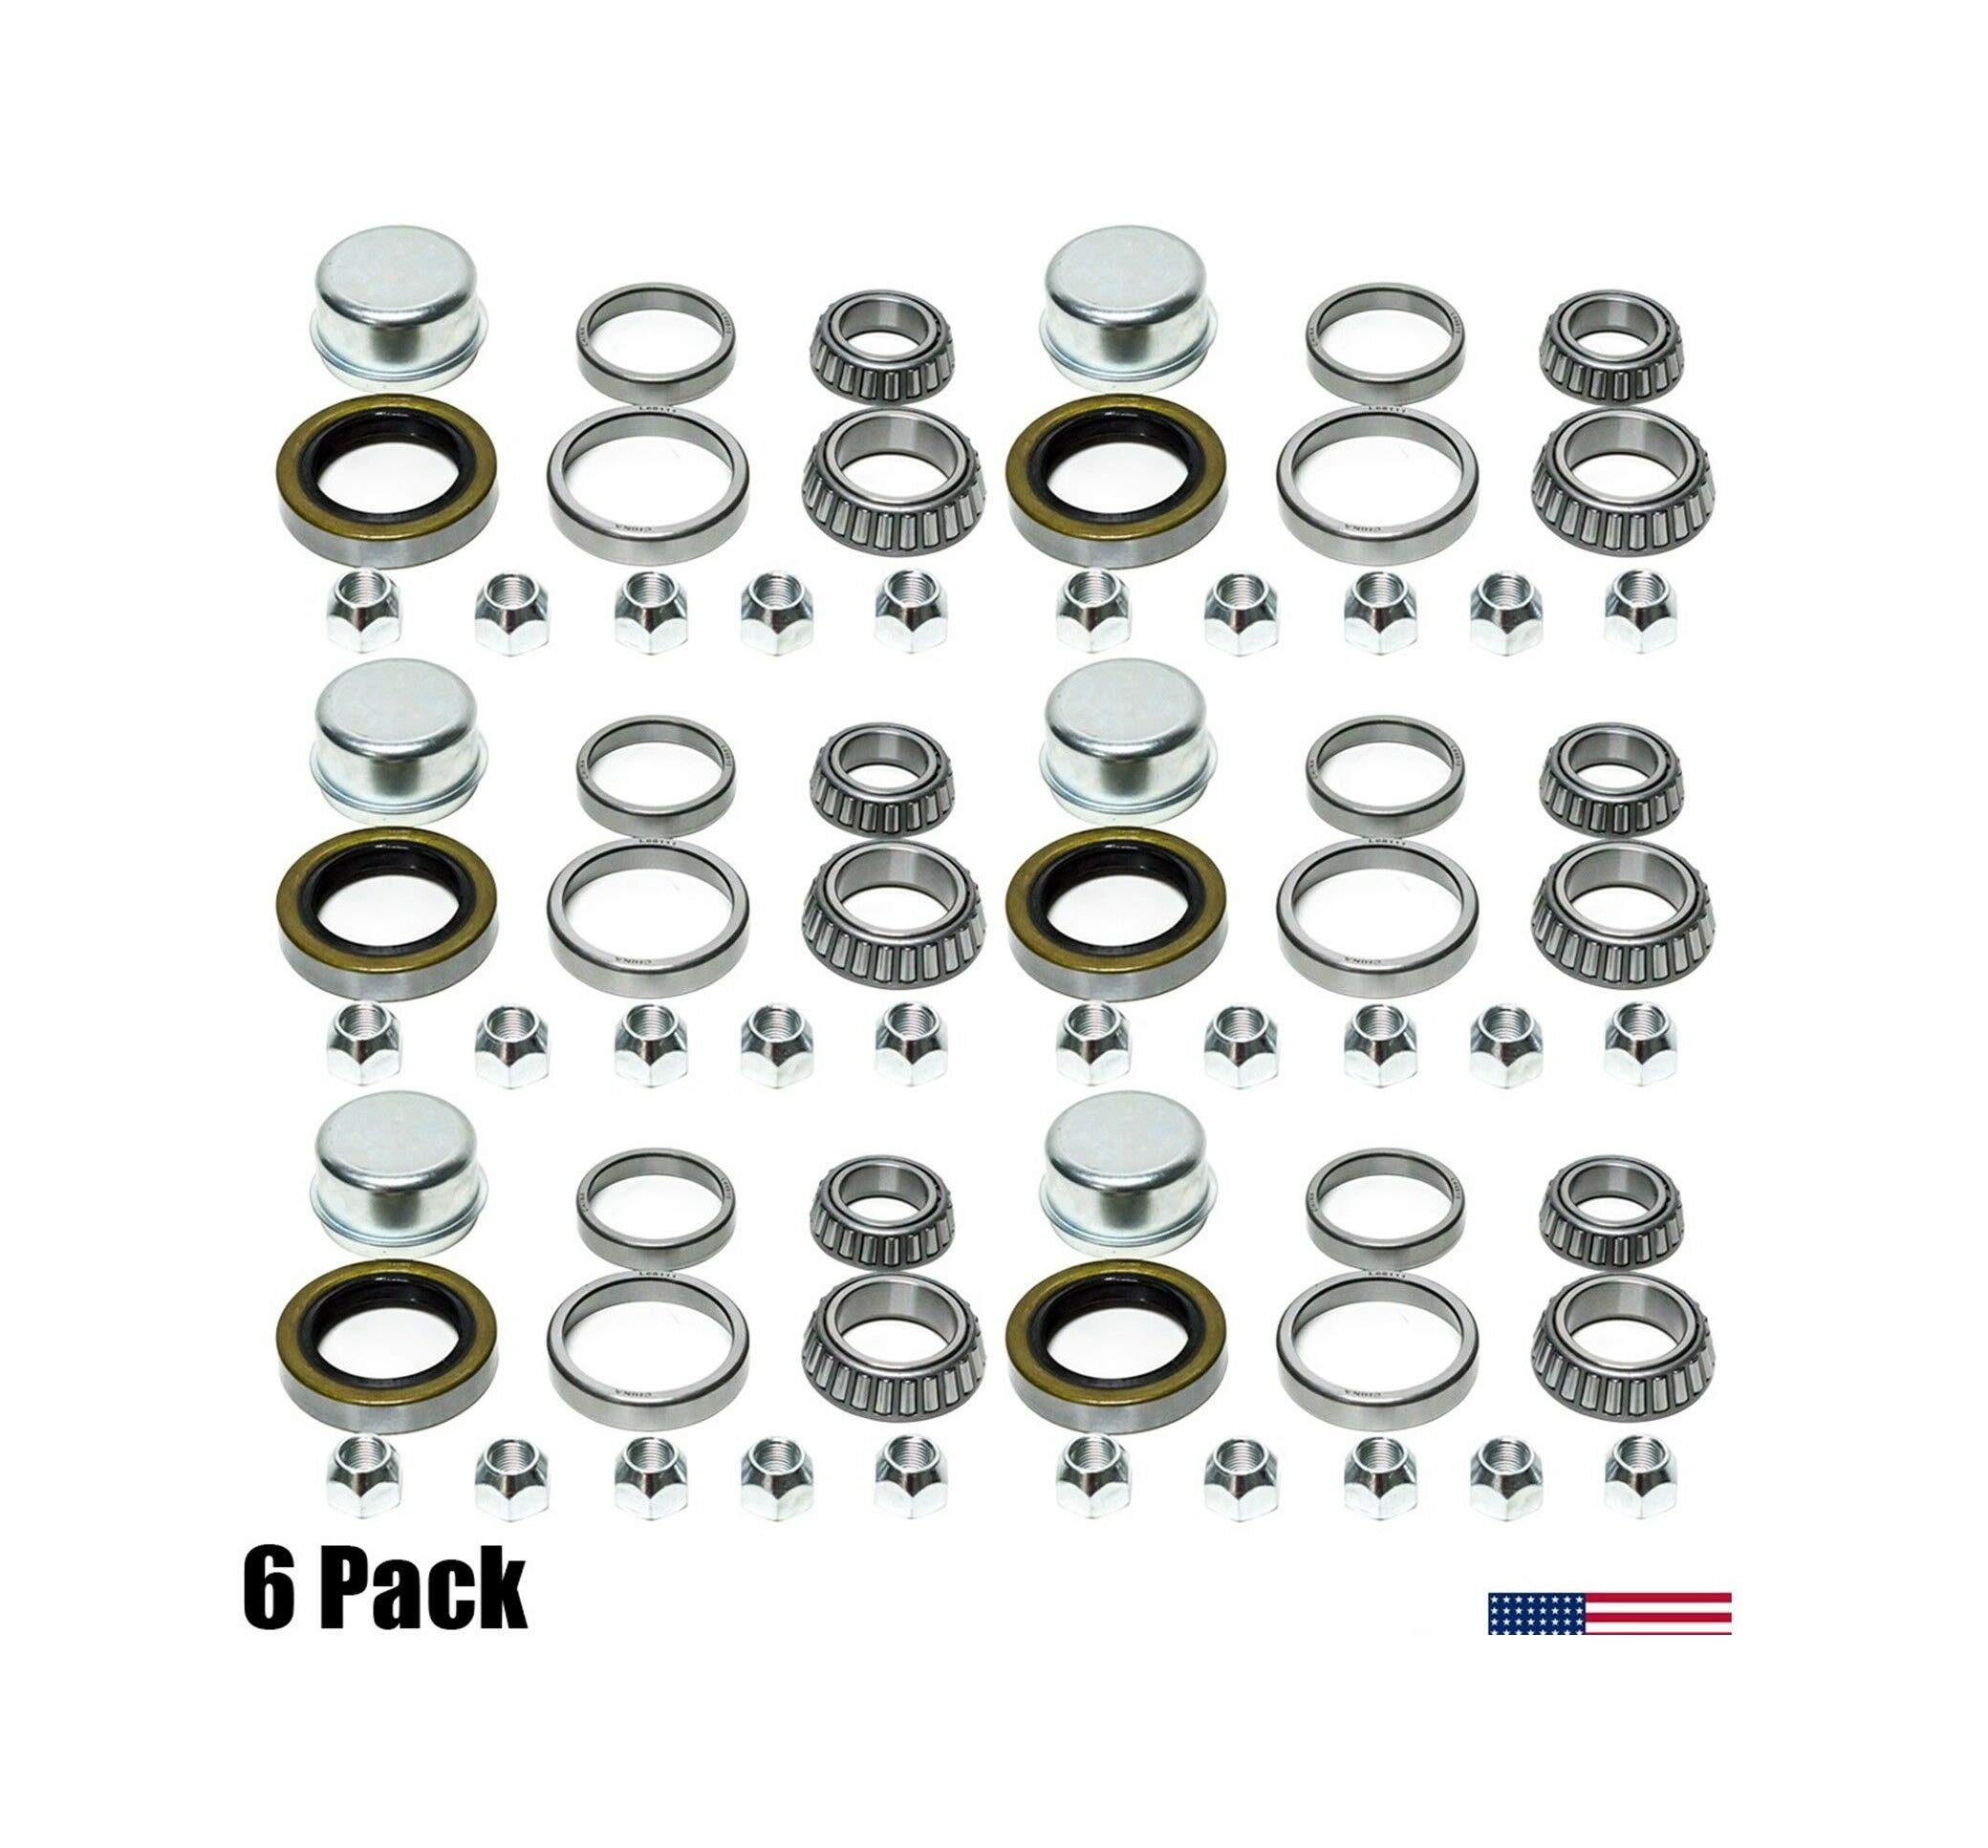 (6-Packs) Nib Trailer Wheel Bearing Kits L68149 L44649 3500# 1.719'' Spindle #84 Axle by LMParts